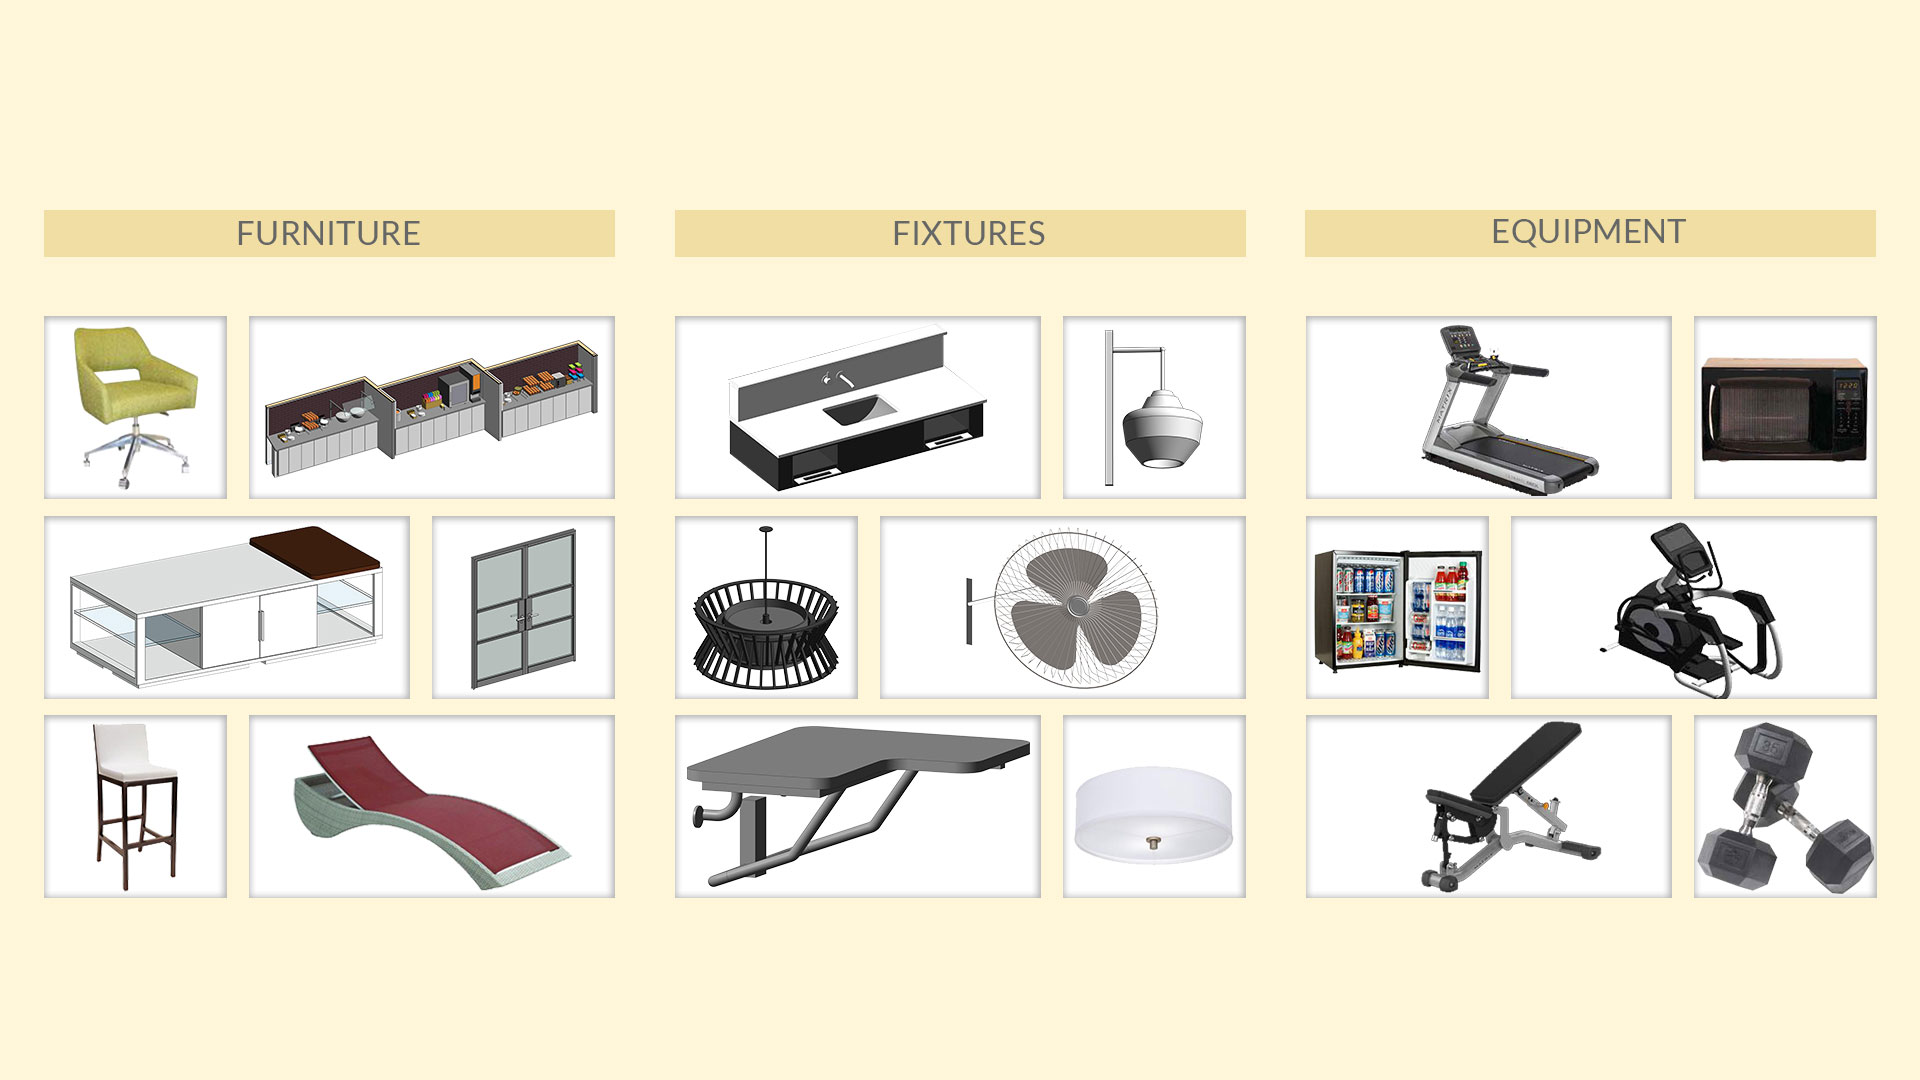 Revit Families for Furniture, Fixtures & Equipment for various hotel brands by United-BIM.